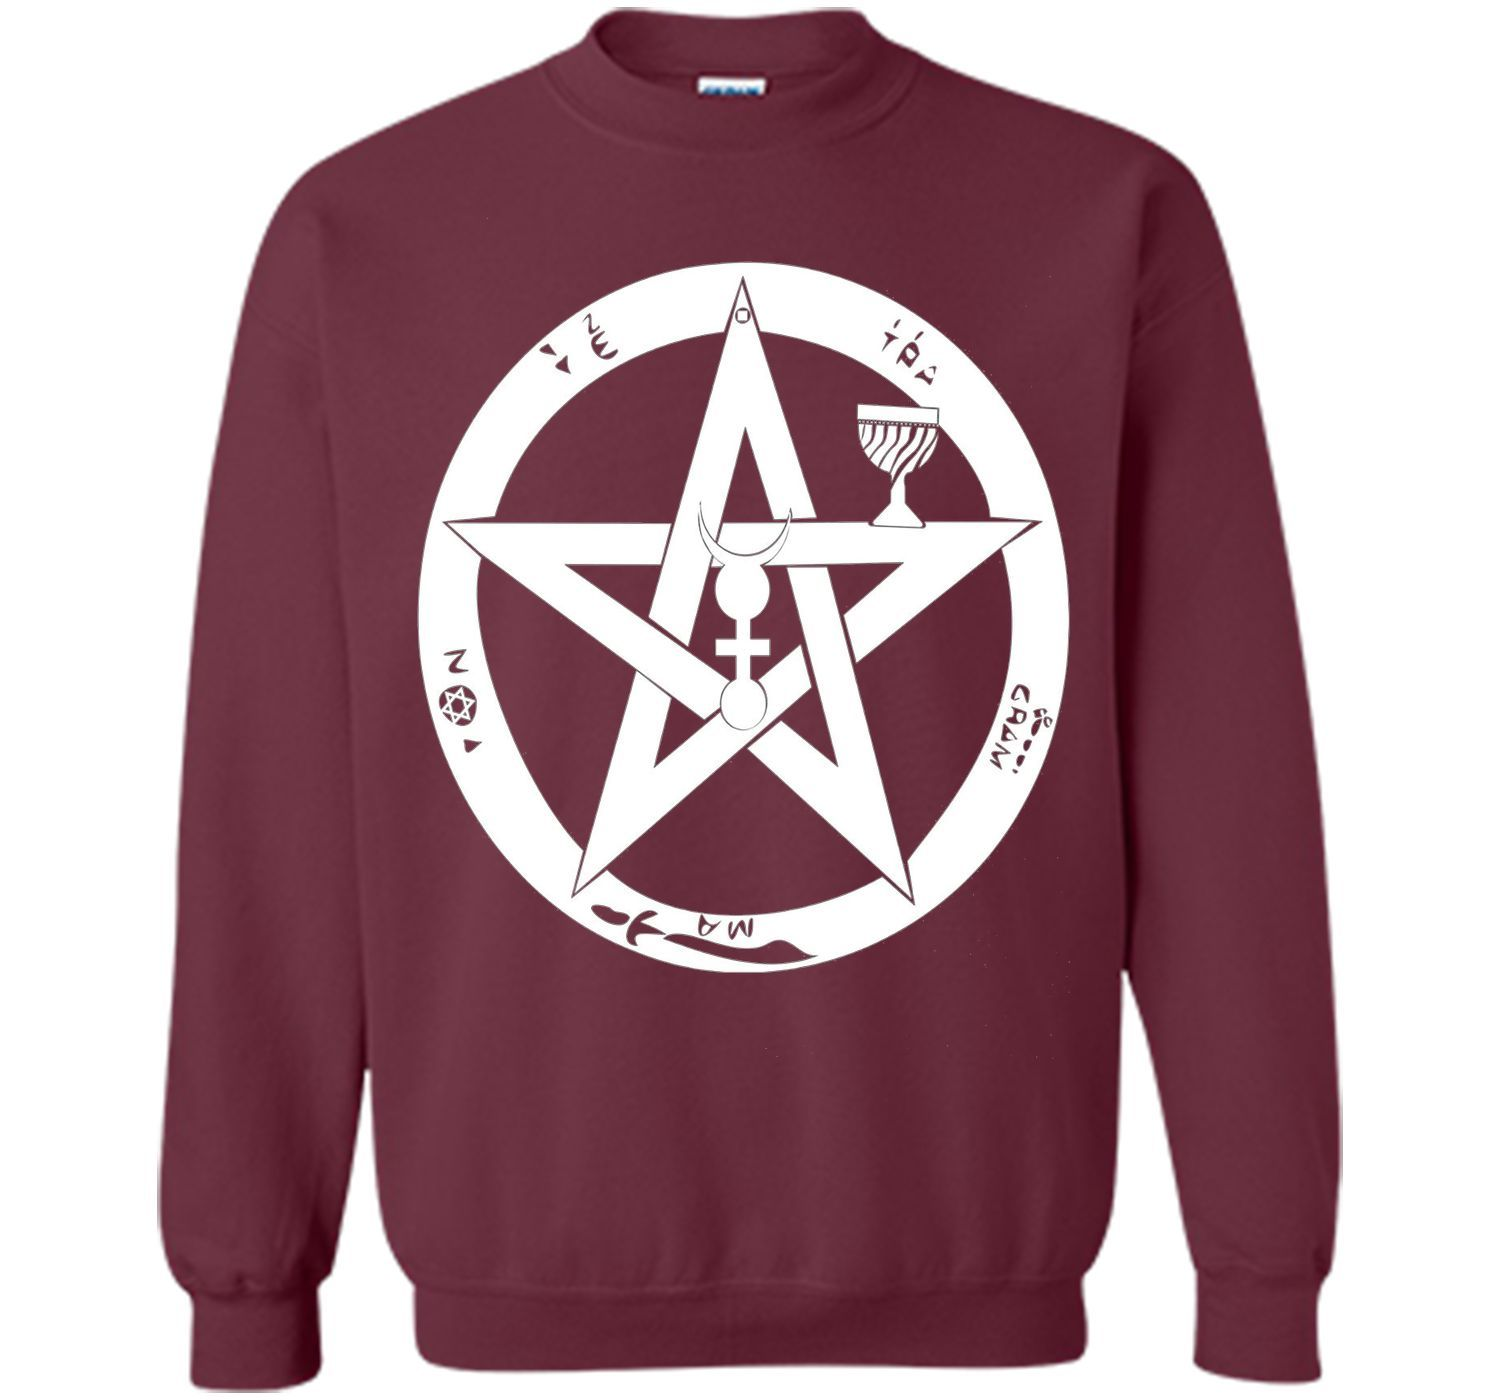 Wicca protection symbol t shirt wiccan pentagram pagan tee wicca protection symbol t shirt wiccan pentagram pagan tee buycottarizona Choice Image